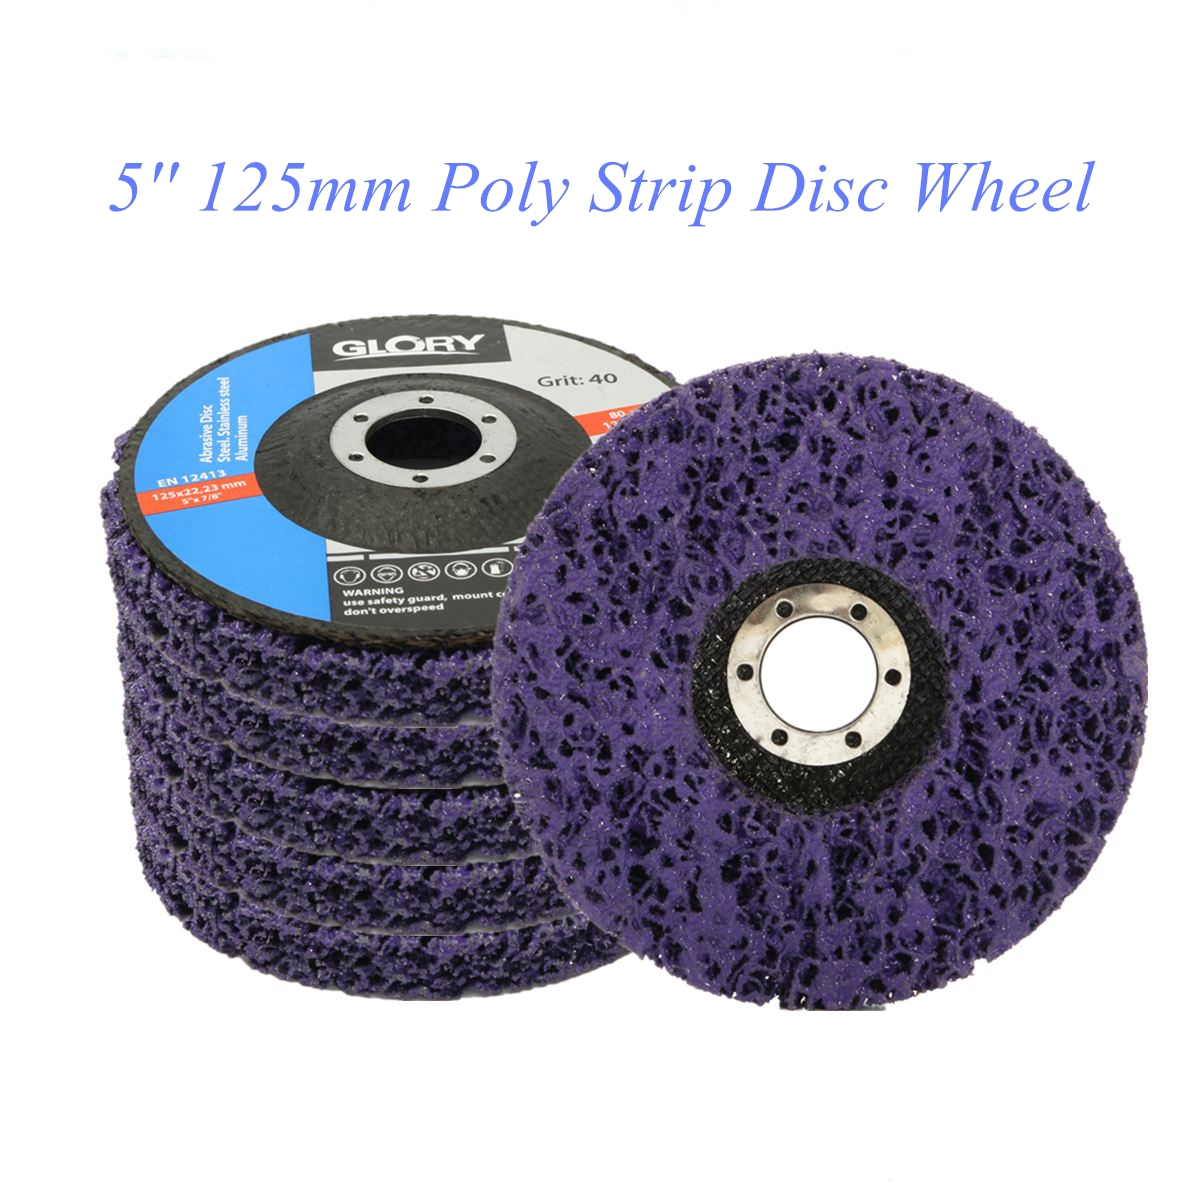 2Pcs 125mm Poly Strip 46 Grit Disc Abrasive Wheel Paint Rust Removal Clean For Angle Grinder